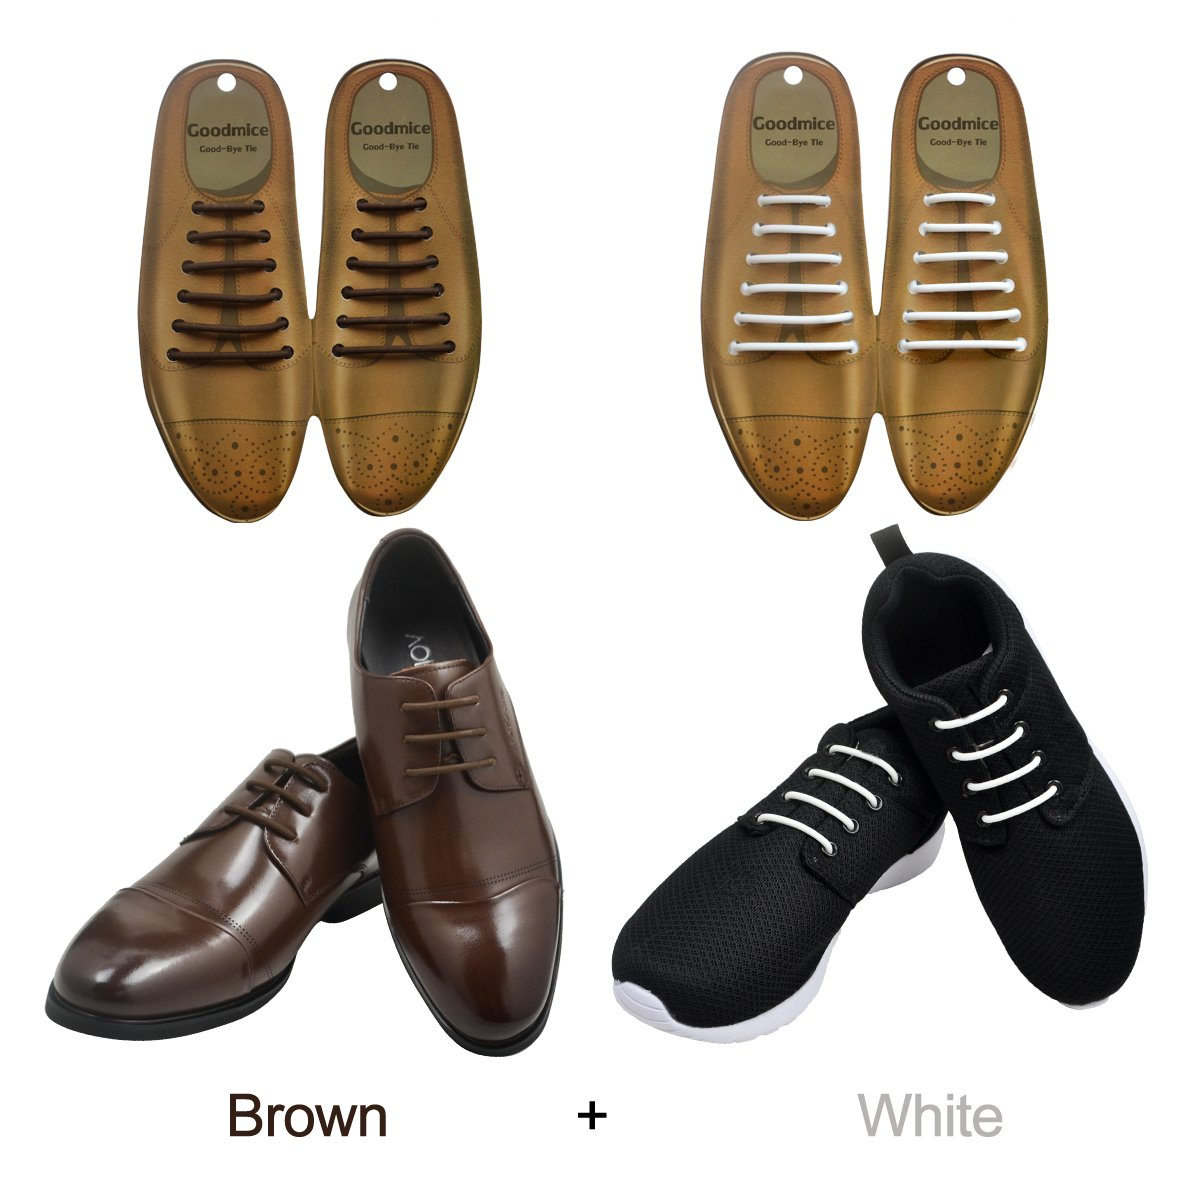 SENT CHARM No Tie Dress Shoe Laces for Men/Women Elastic Rubber Silicone Formal Oxford Shoelaces Best for Dress Shoes Oxford Shoes (Brown+White)